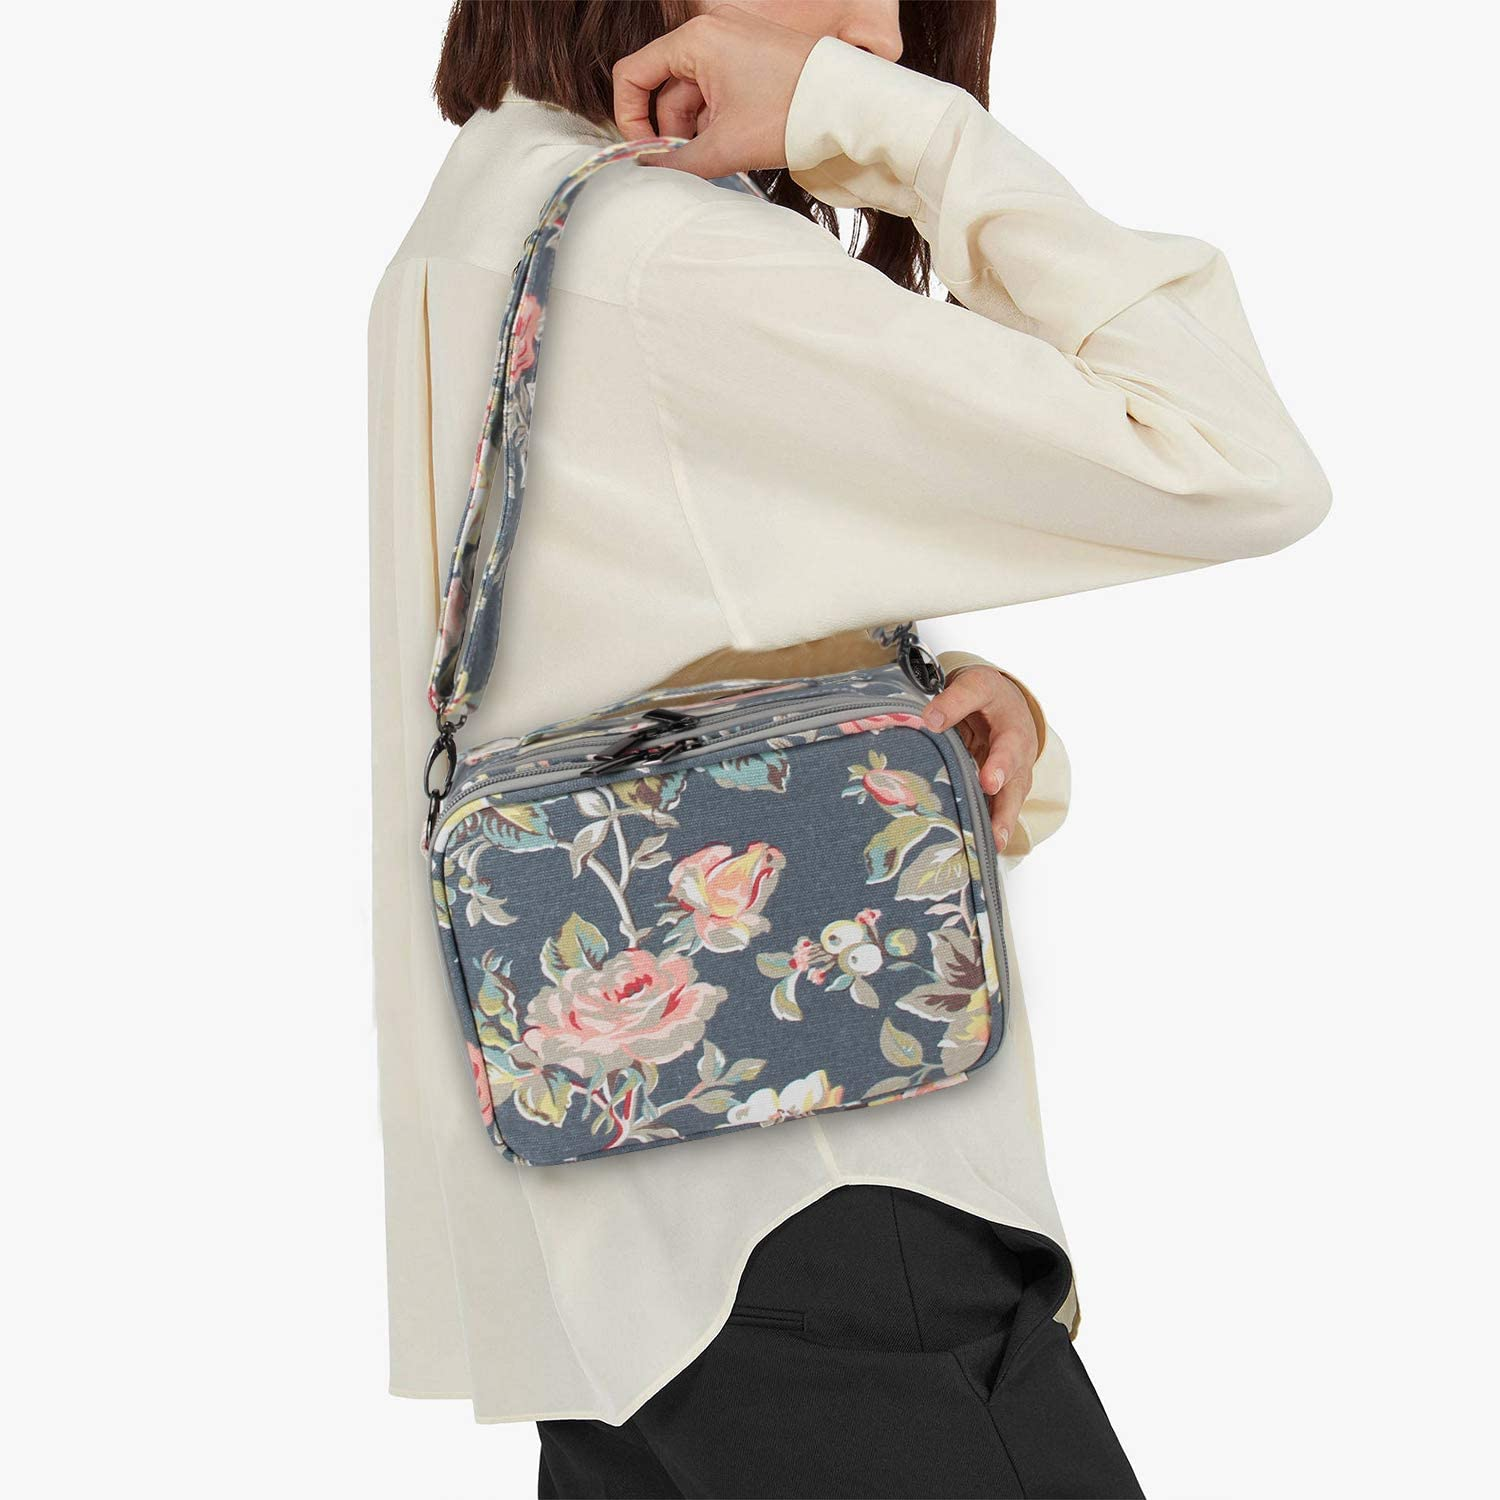 Teamoy Camera Case Compatible with Fujifilm Instax Mini 9 Travel Carrying Storage Bag for Instant Camera and Accessories Peony Bag Only